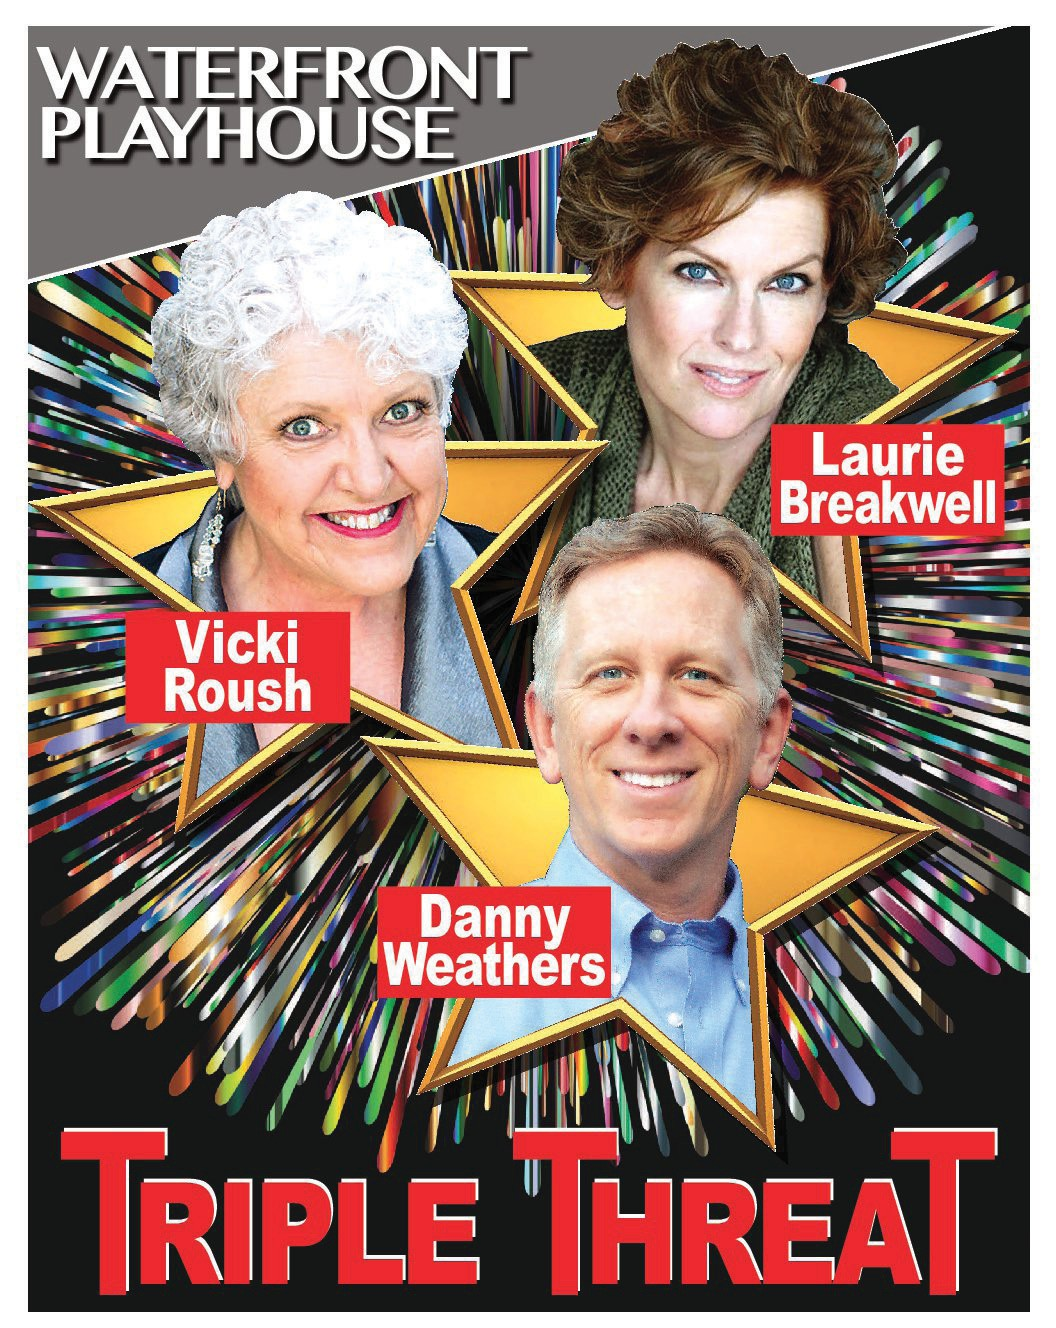 """This year's kick-off concert features Waterfront Playhouse favorites Danny Weathers, Laurie Breakwell and Vicki Roush."""